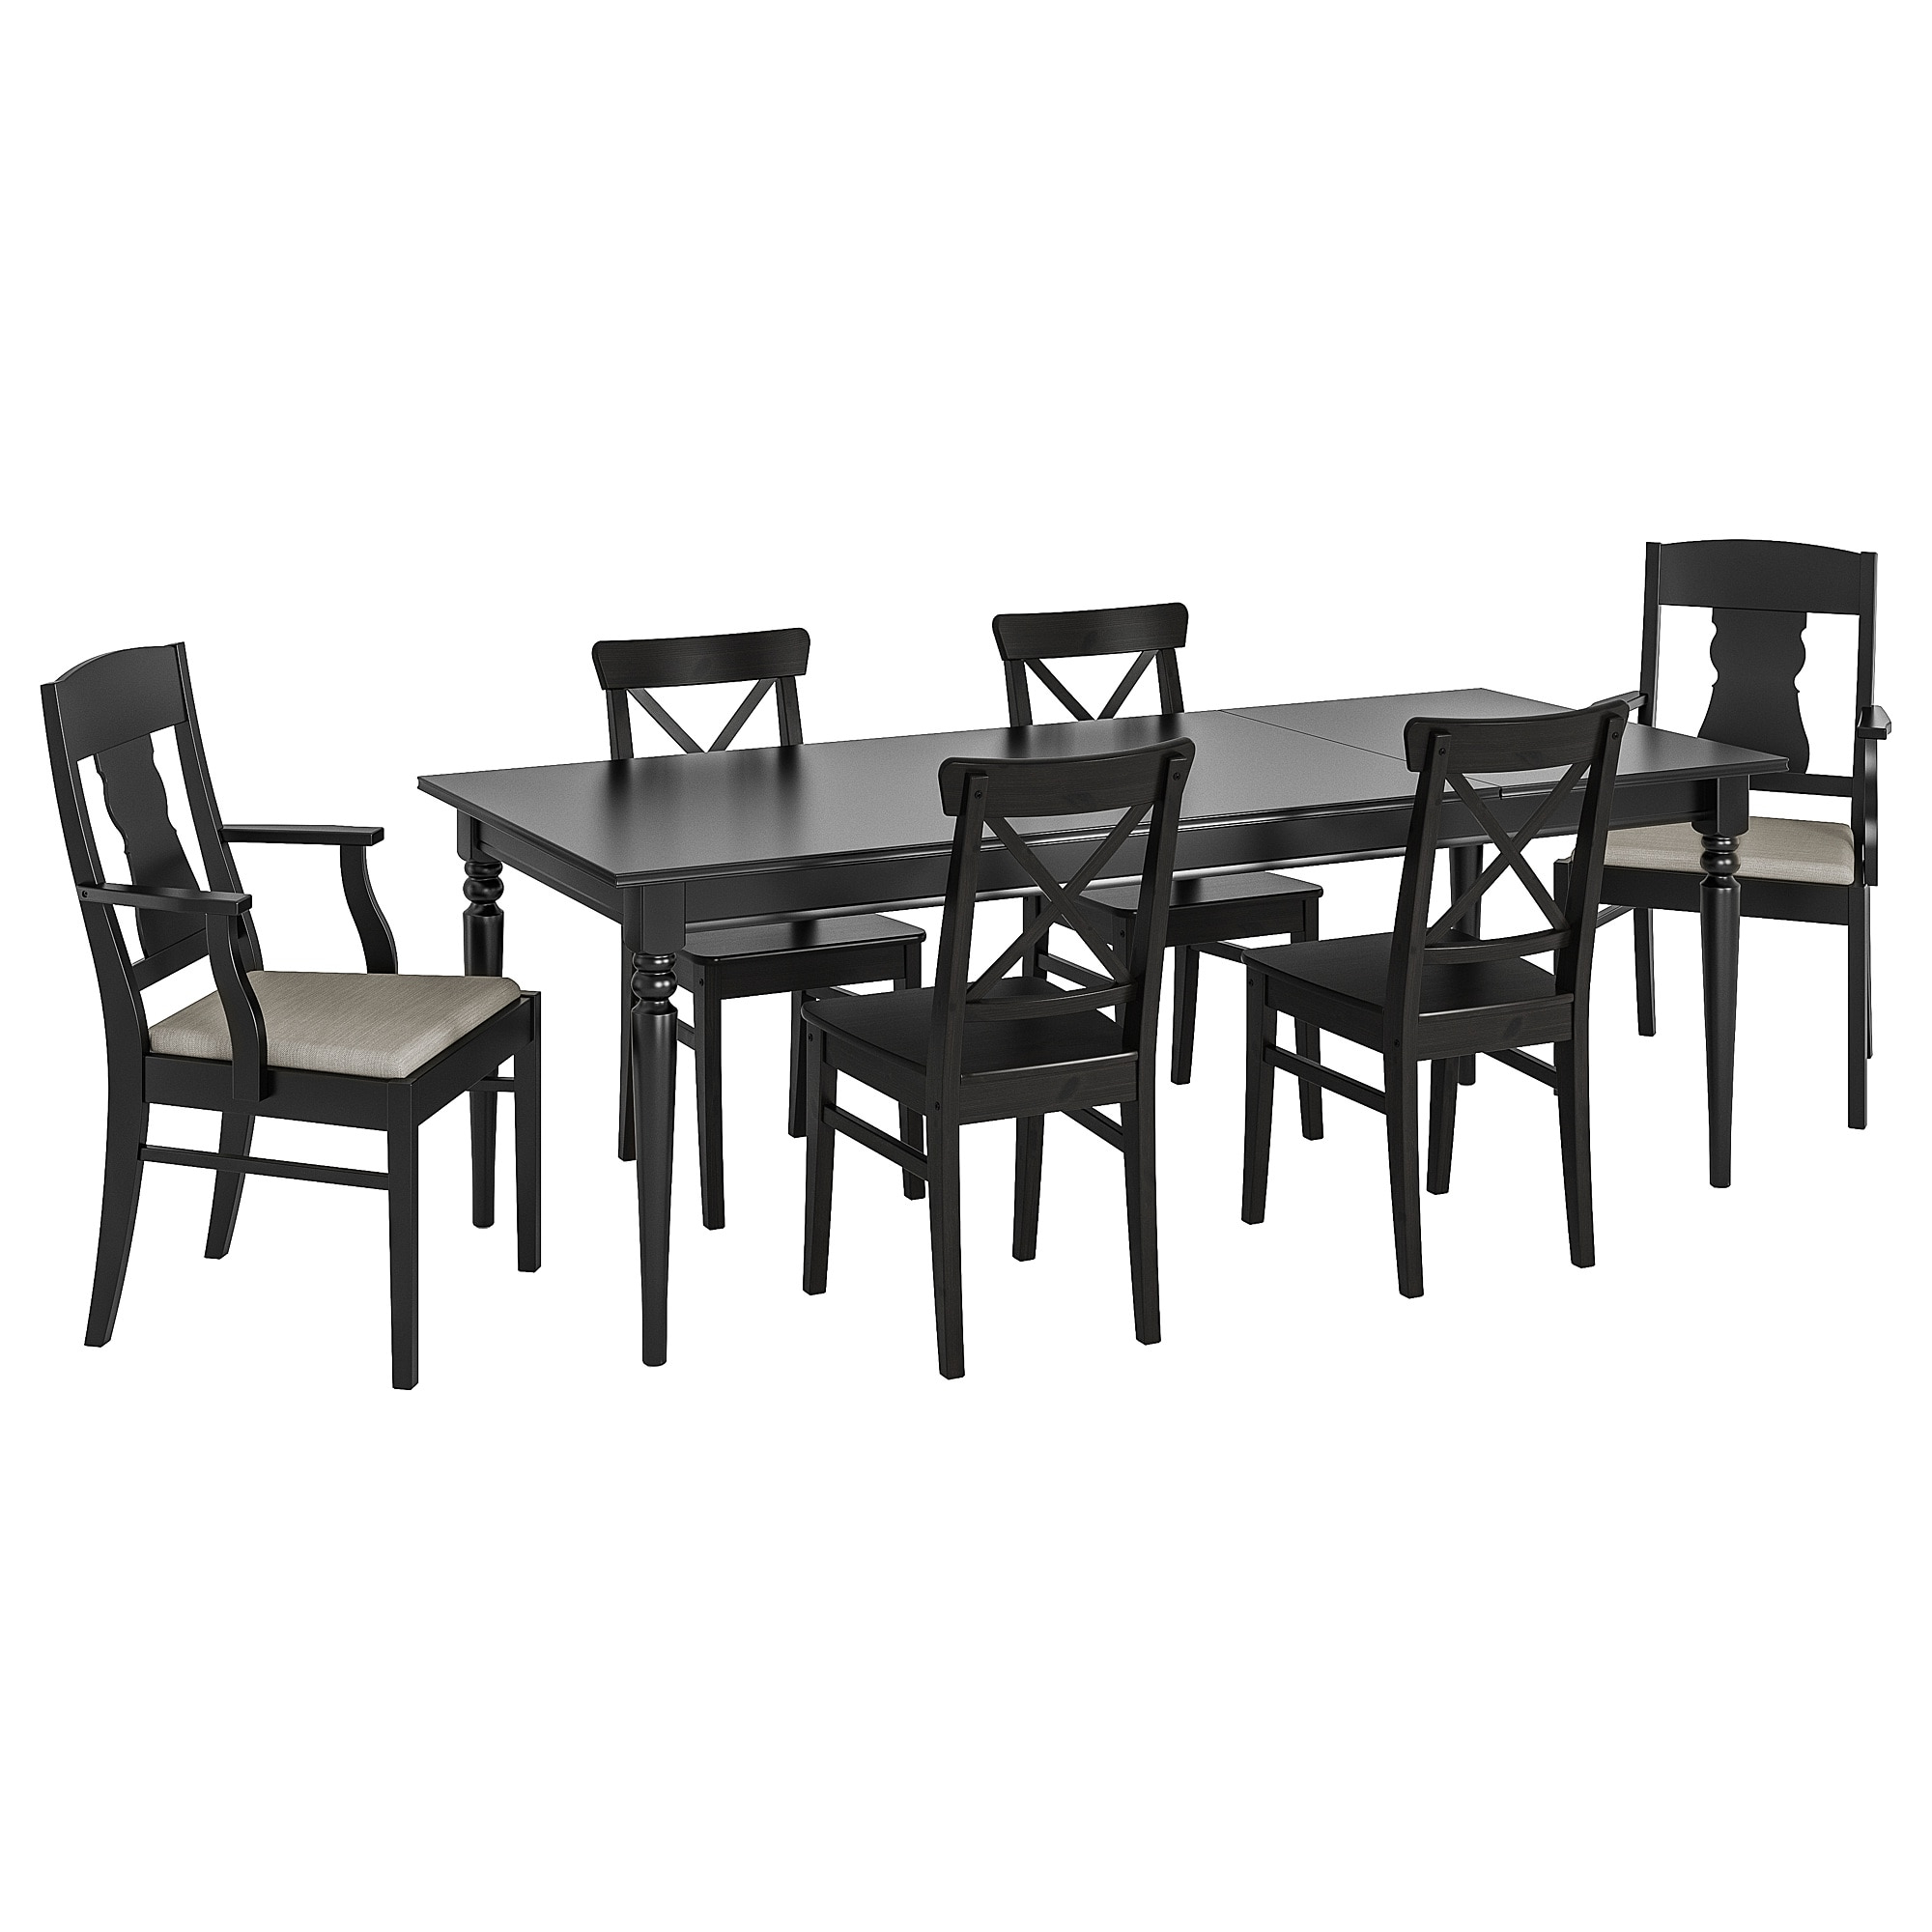 Most Current Castellanos Modern 5 Piece Counter Height Dining Sets With Regard To Ingatorp / Ingolf Table And 6 Chairs – Black, Nolhaga Grey/beige – Ikea (View 16 of 25)